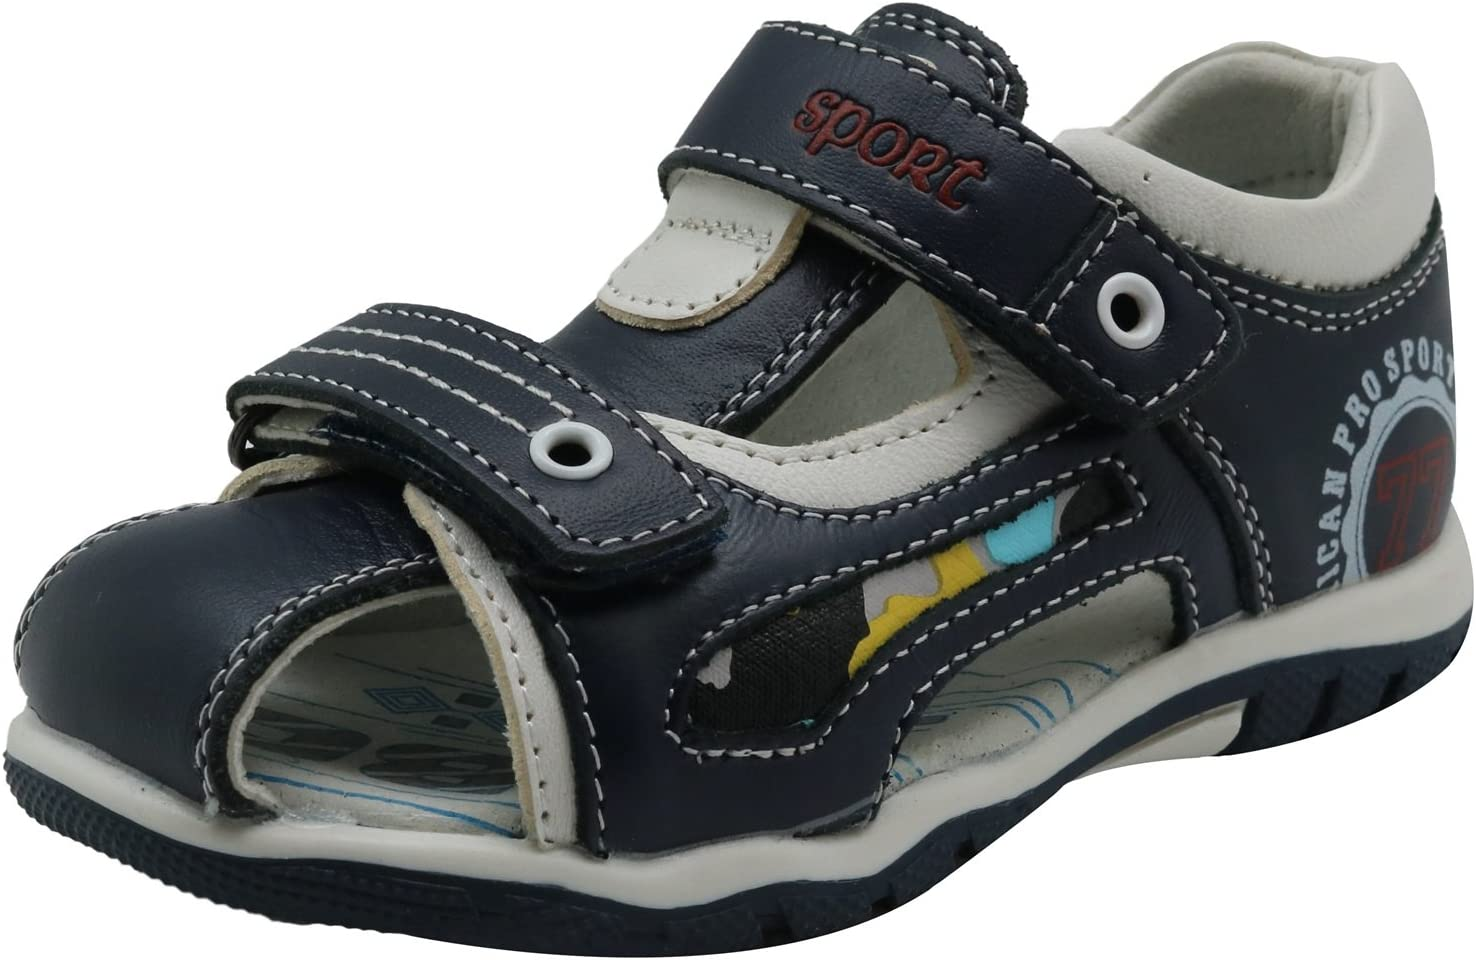 Toddler//Little Kid//Big Color : Navy//White332 , Size : 9 M US Toddler XM-Childrens shoes Non-Slip Boys Double Adjustable Strap Closed-Toe Leather Sandals Durable